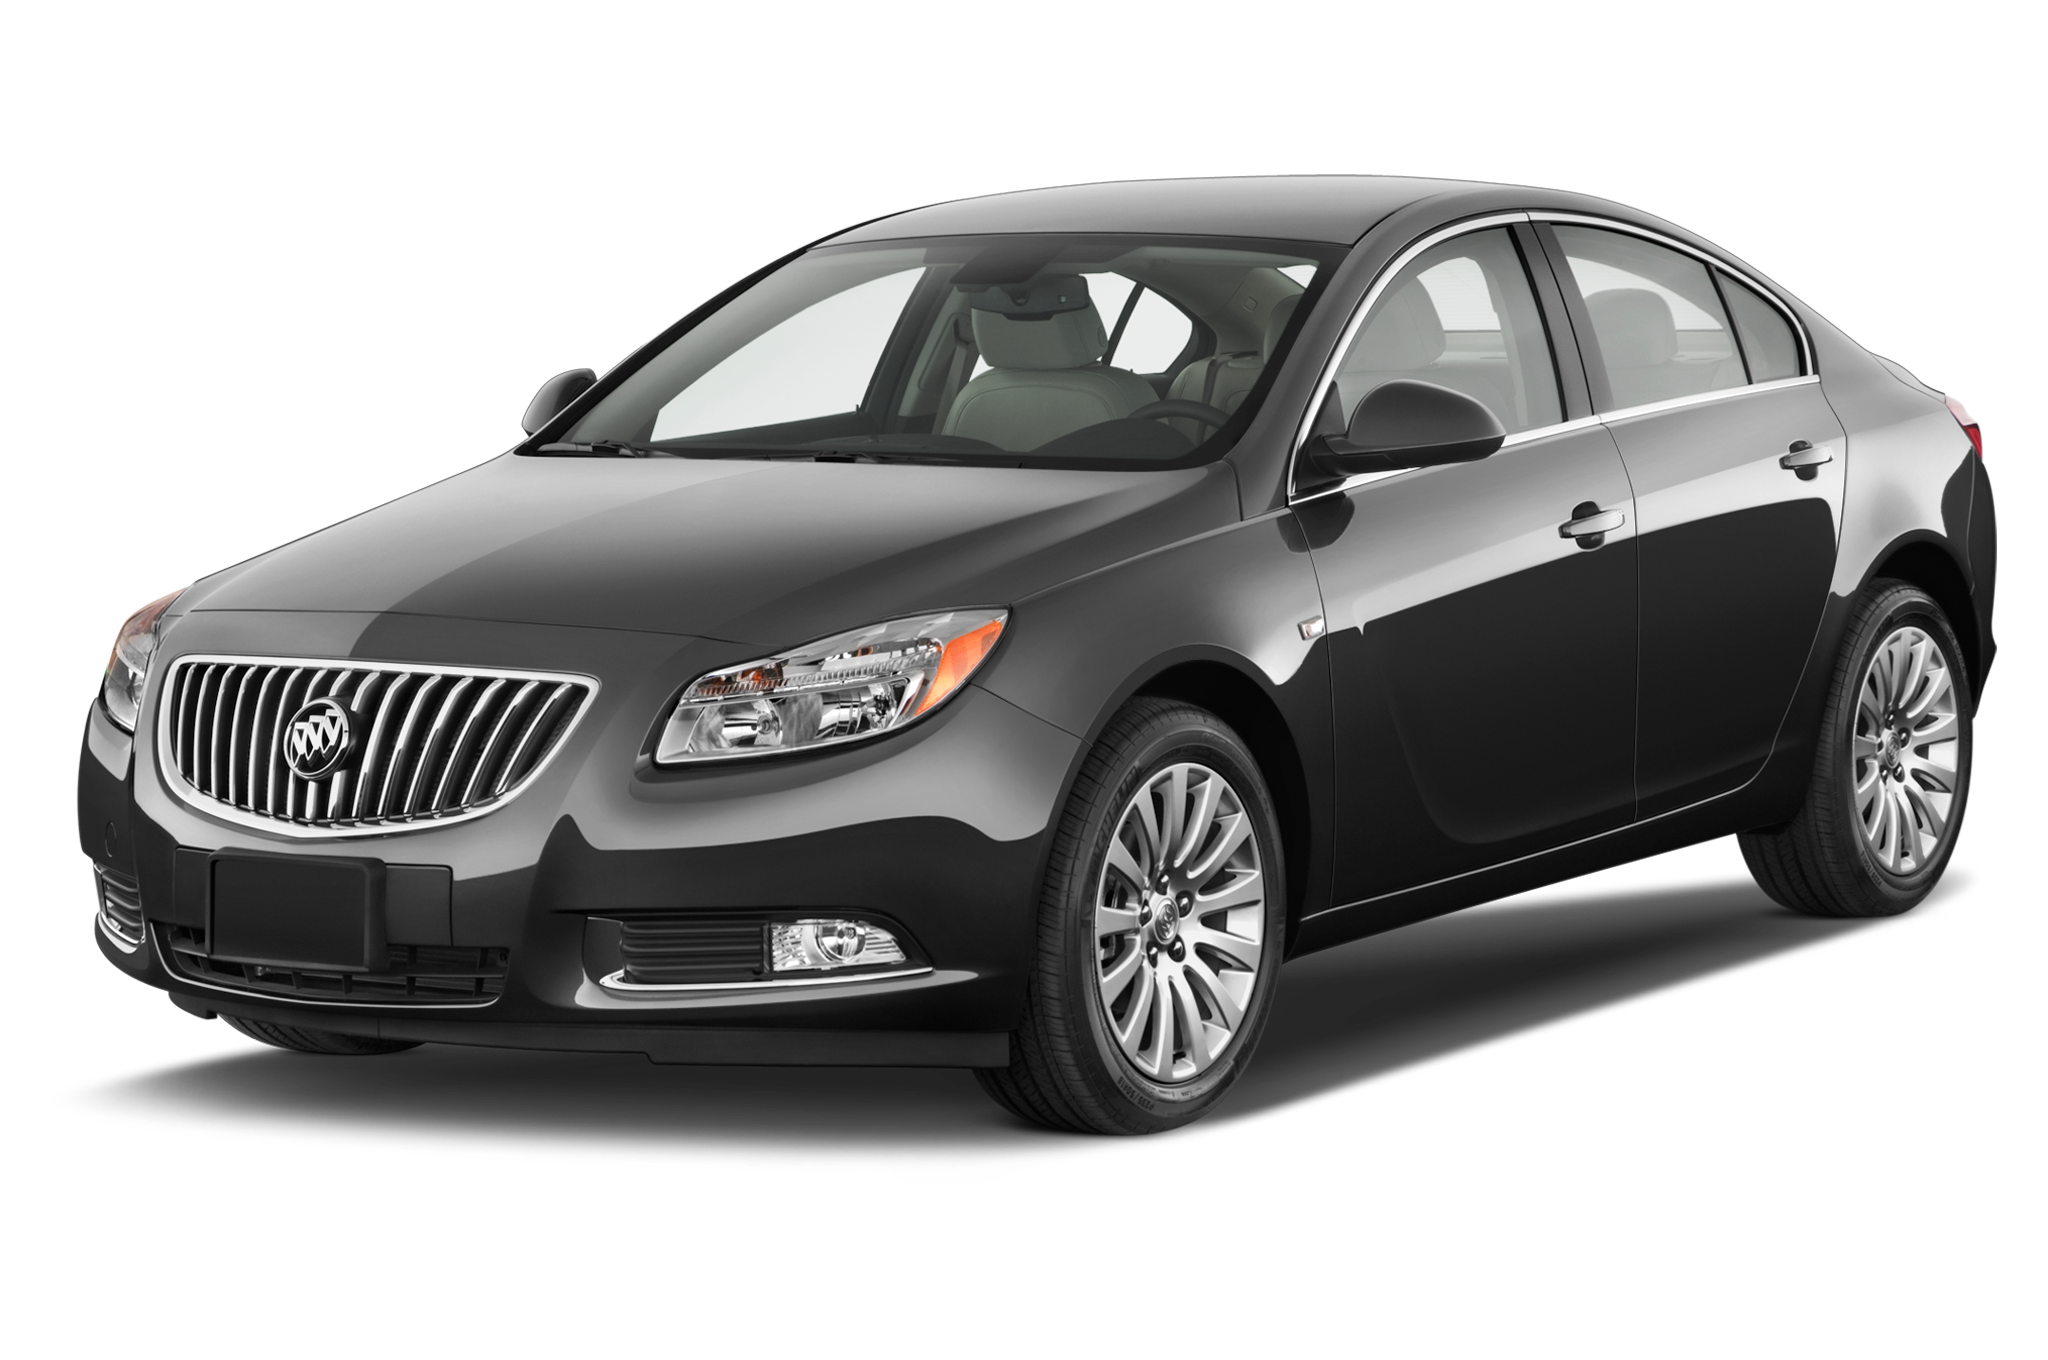 2013 Buick Regal Gs Editors Notebook Automobile Magazine